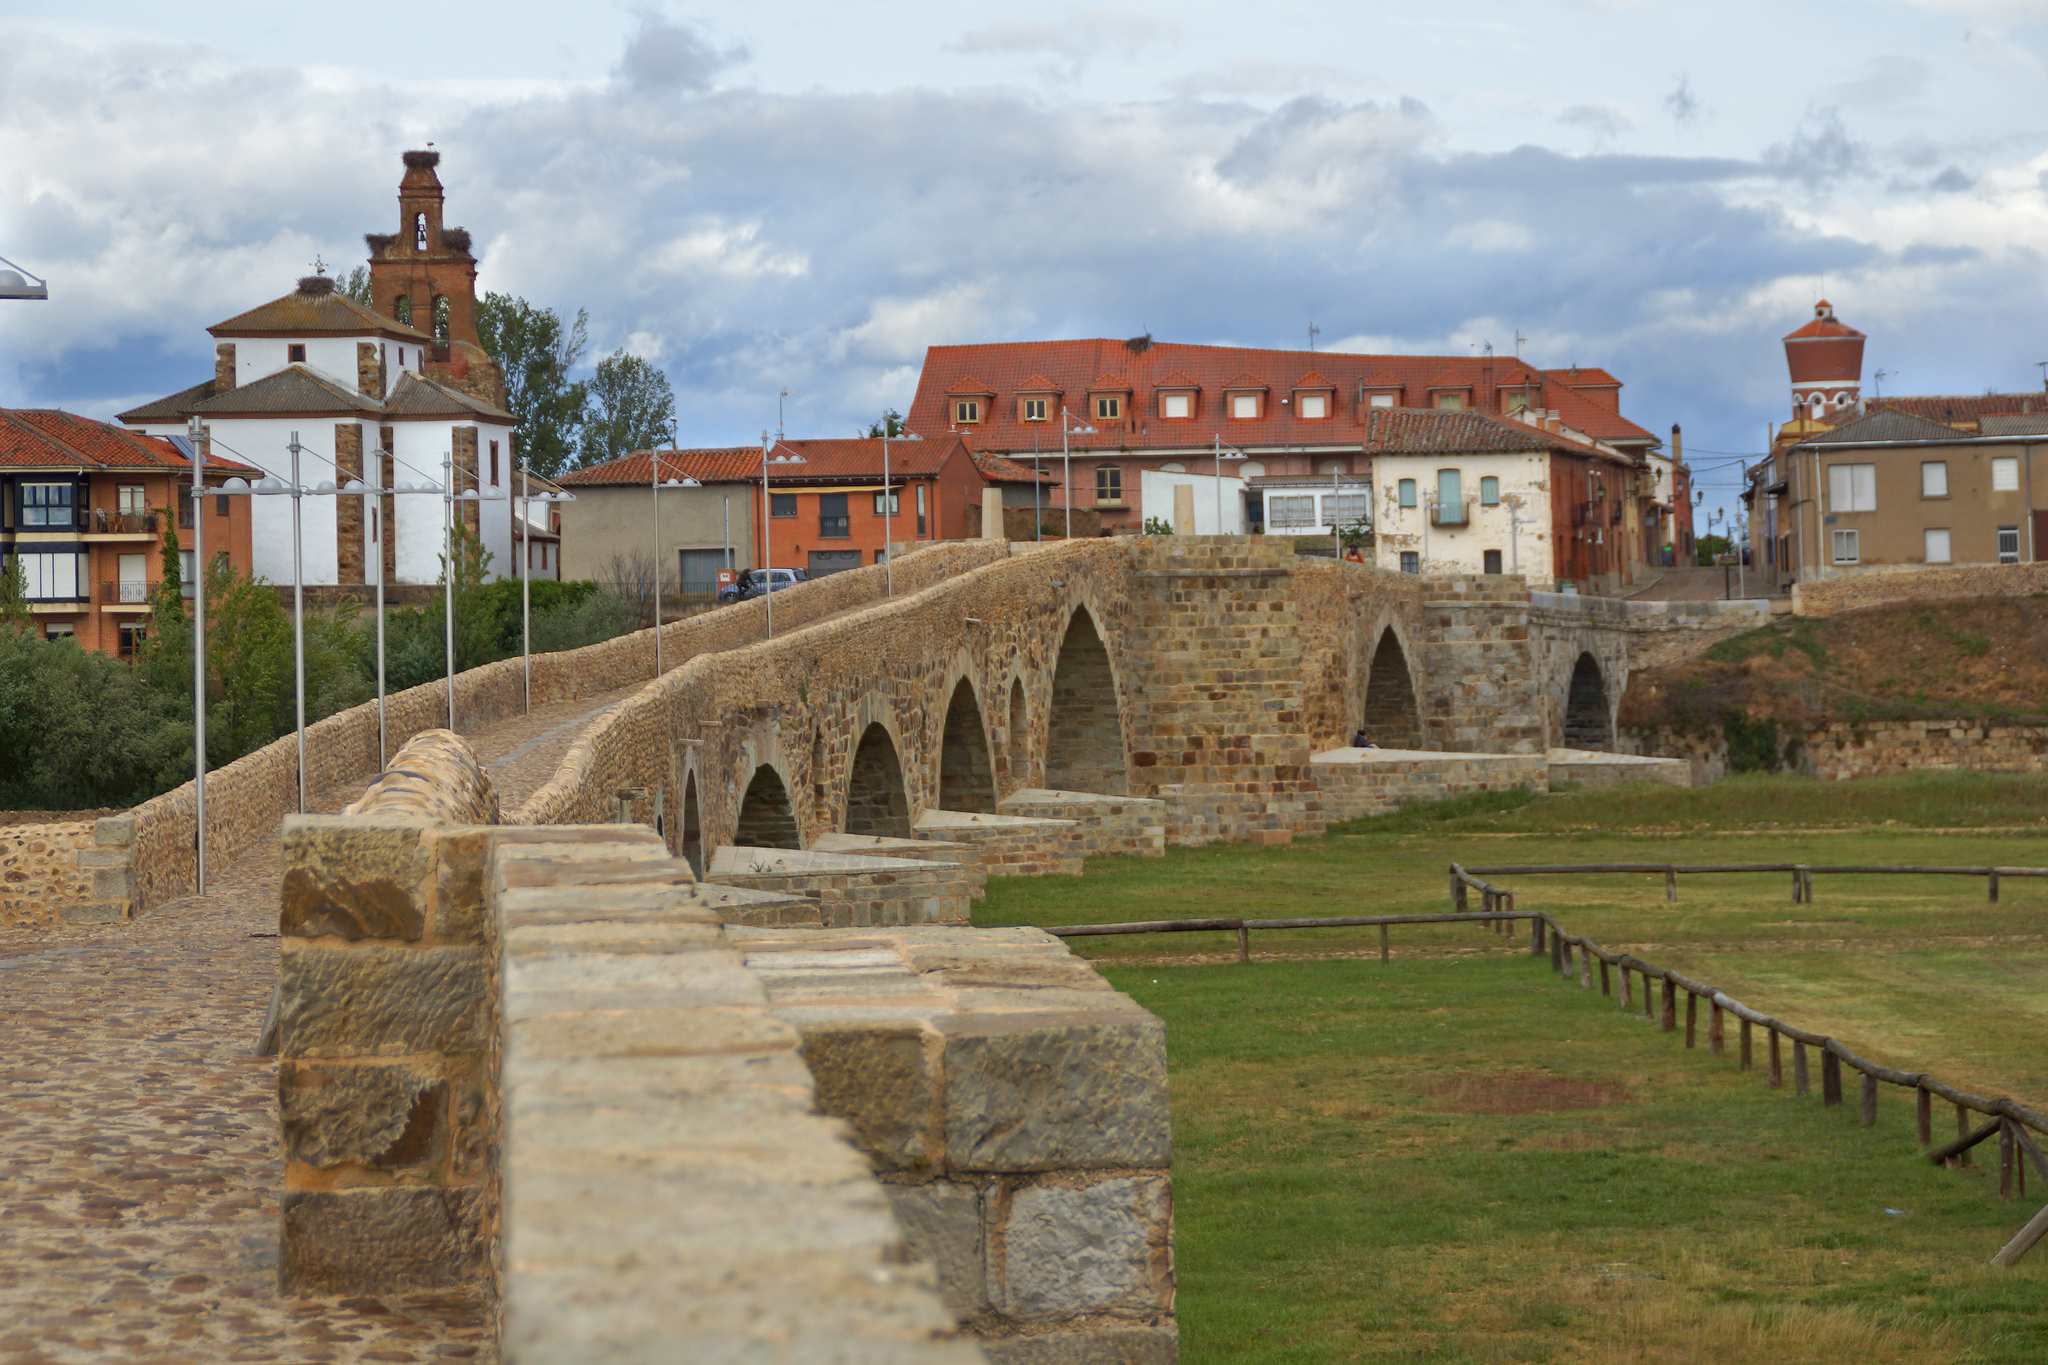 Bridge of the Paso Honroso in Hospital de Órbigo